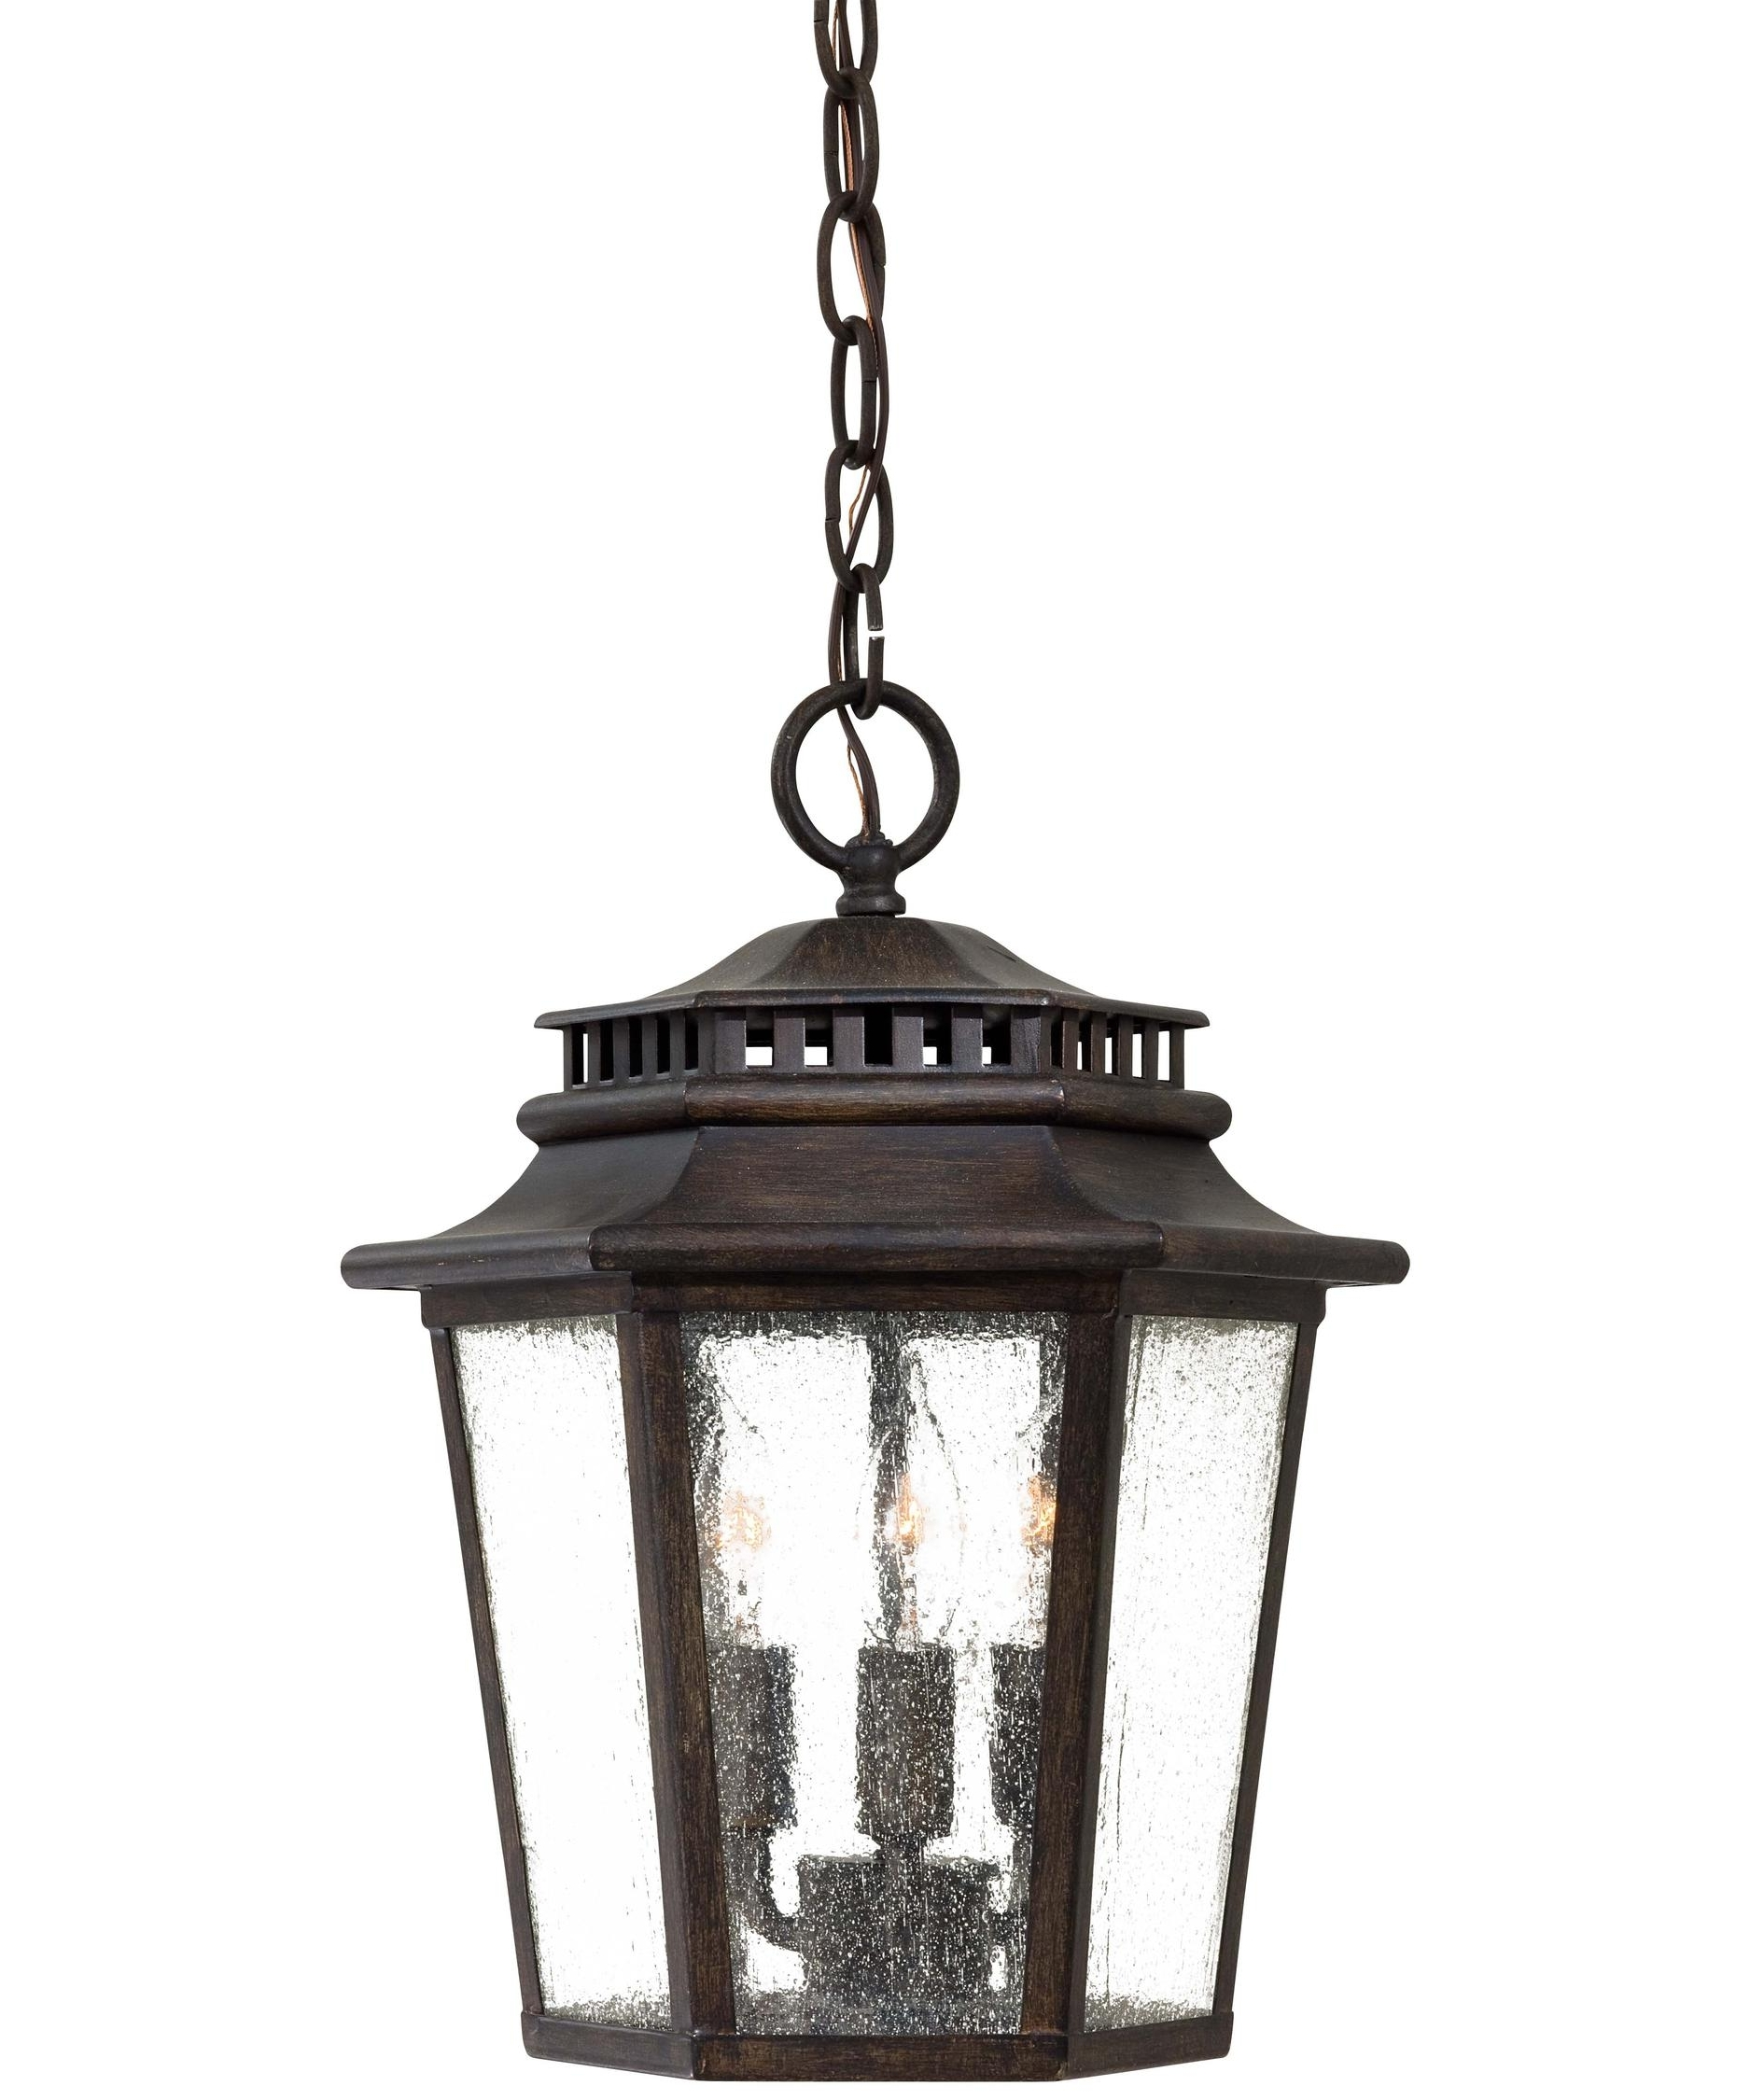 Popular Minka Lavery 8274 Wickford Bay 11 Inch Wide 3 Light Outdoor Hanging In Outdoor Hanging Ceiling Lights (View 8 of 20)